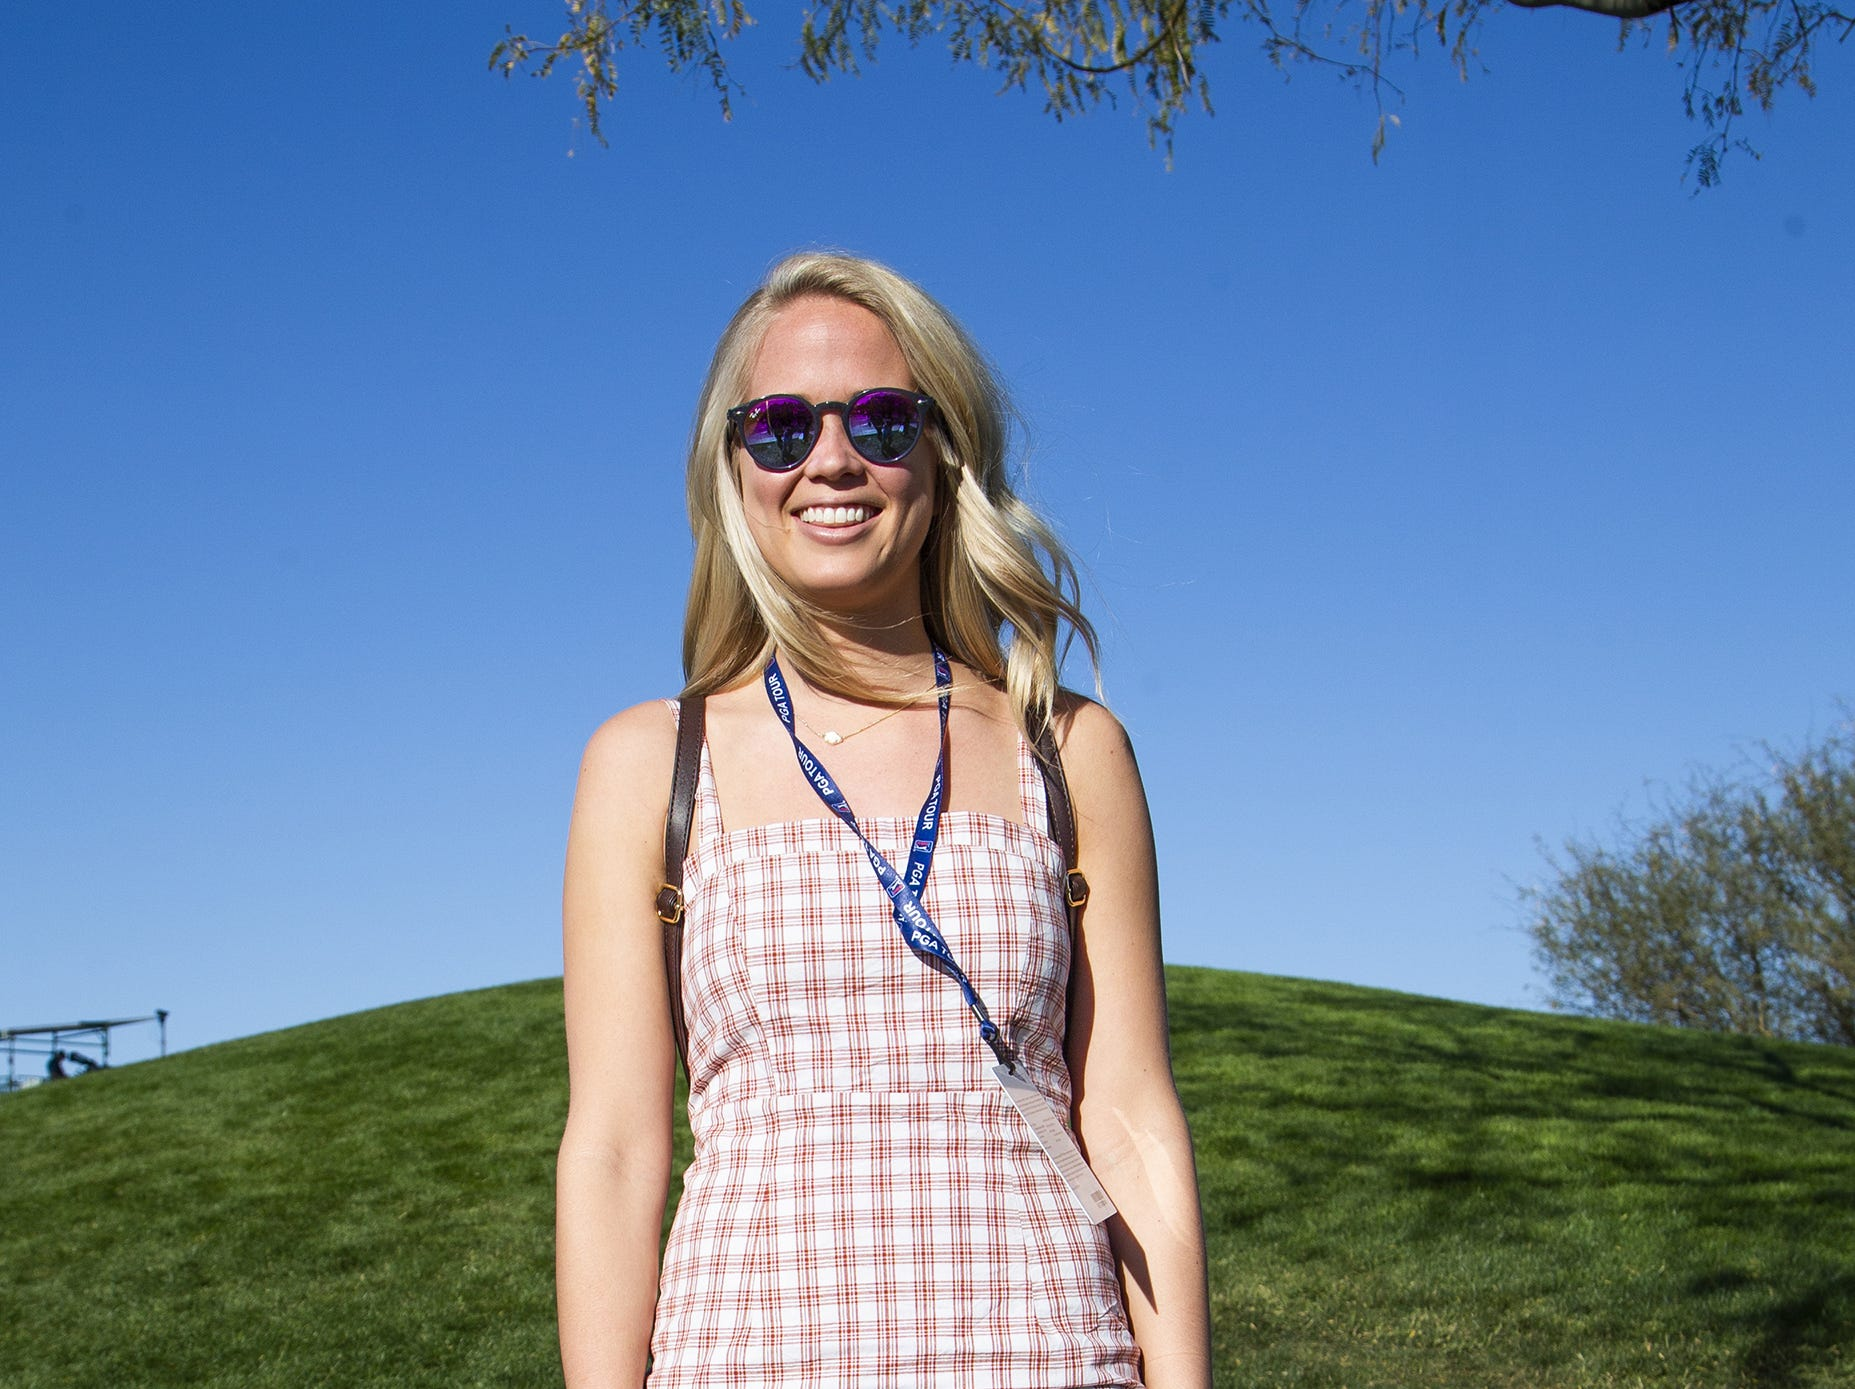 Becca Martin, 24, Cincinnati, dresses fine for the second round of the Waste Management Phoenix Open at the TPC Scottsdale, Friday, February 1, 2019.